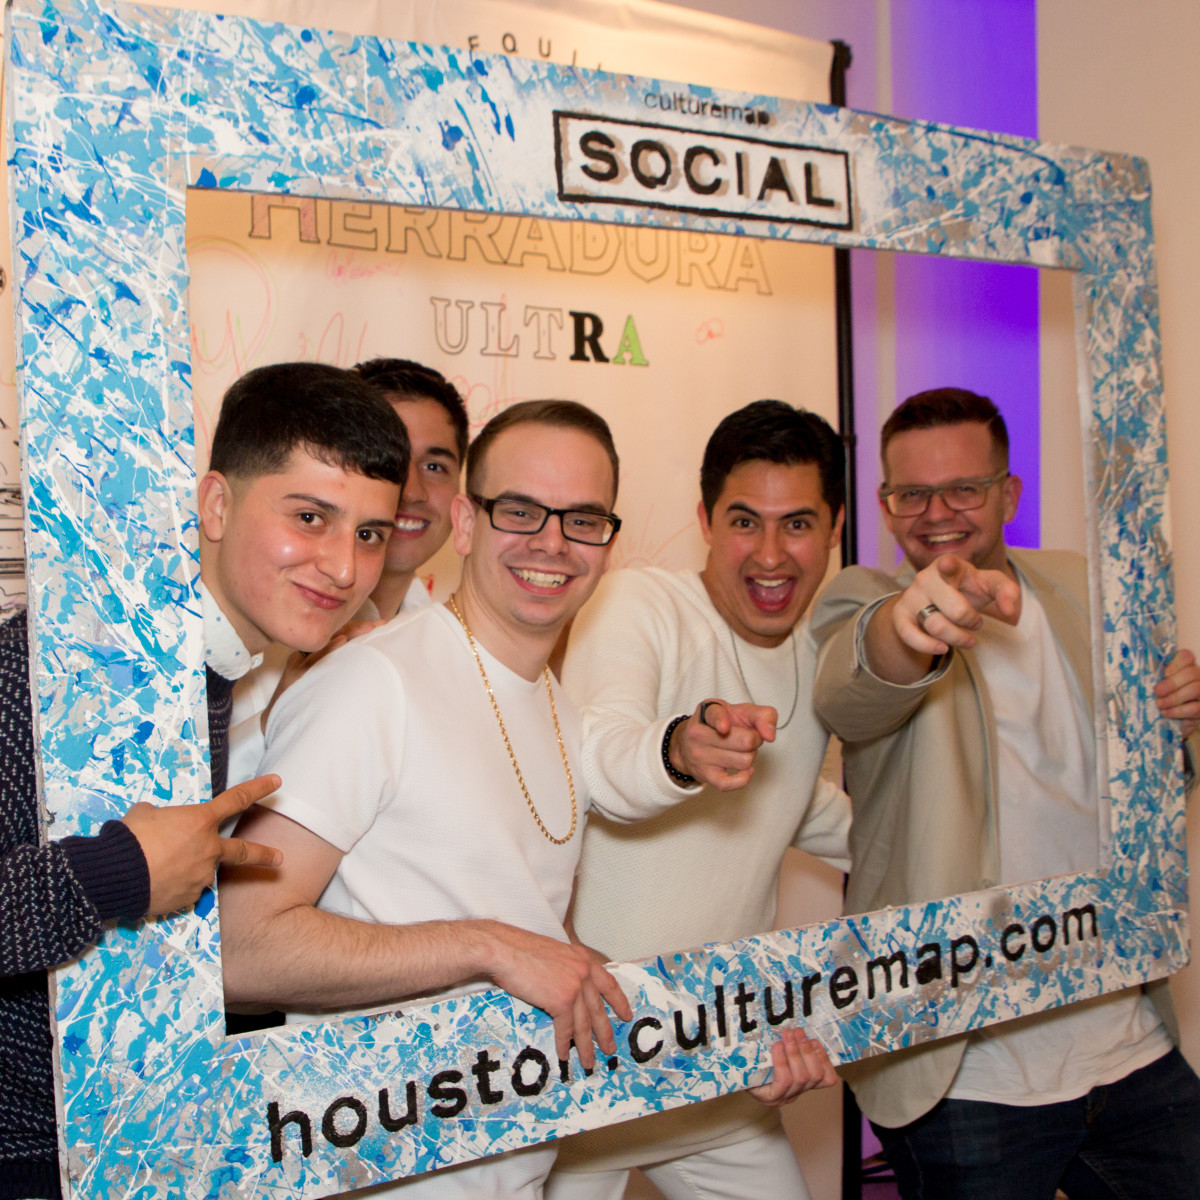 CultureMap Social, March 2016, Smilebooth action